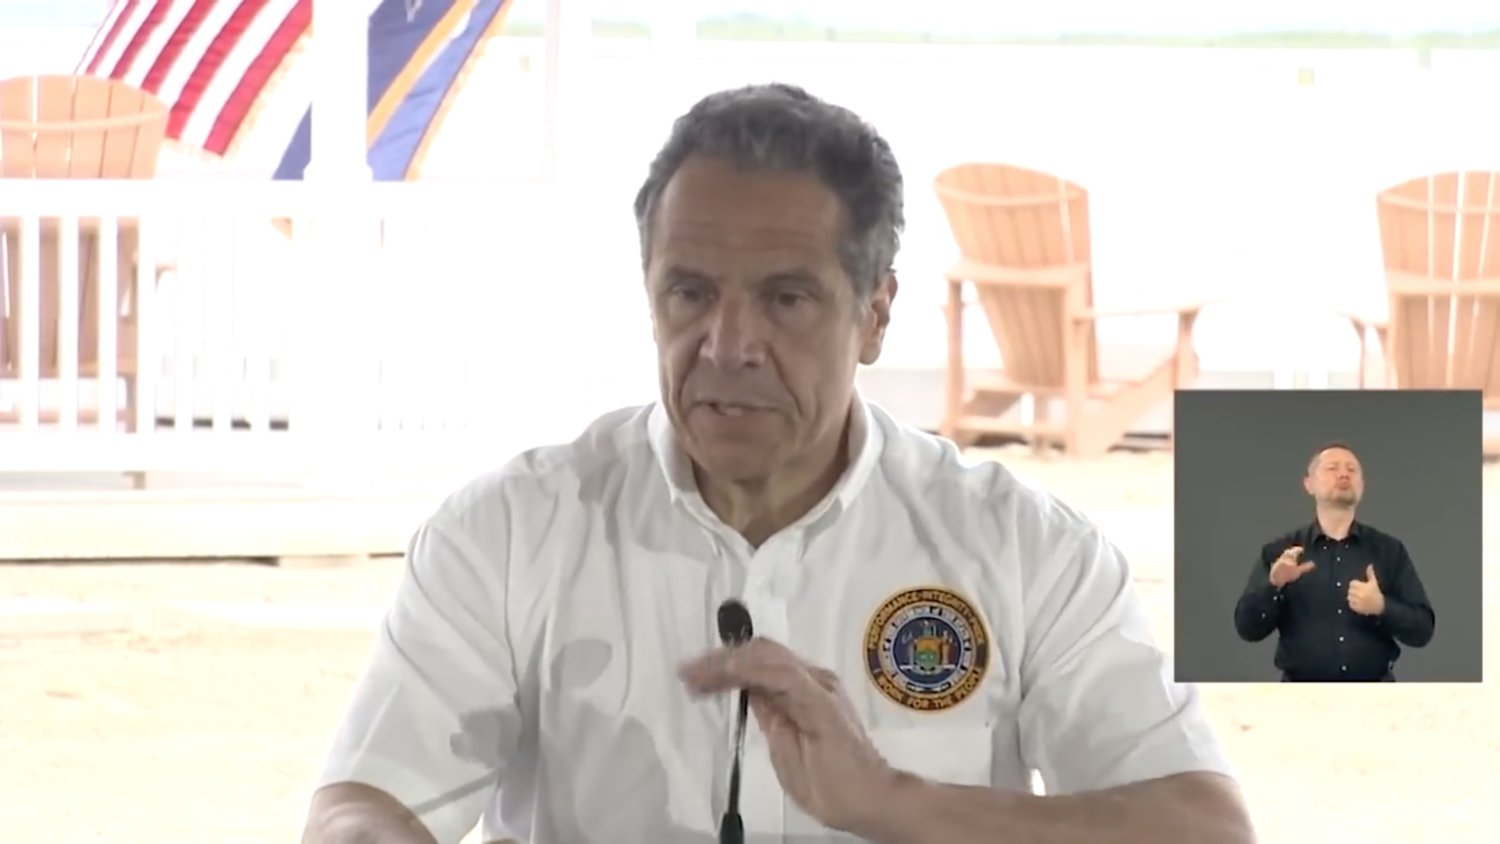 From Jones Beach Sunday, Governor Cuomo said Long Island was on track for Phase One reopening on May 27, though he noted the number of Covid-19 deaths needed to decline and the number of contact tracers needed to increase.